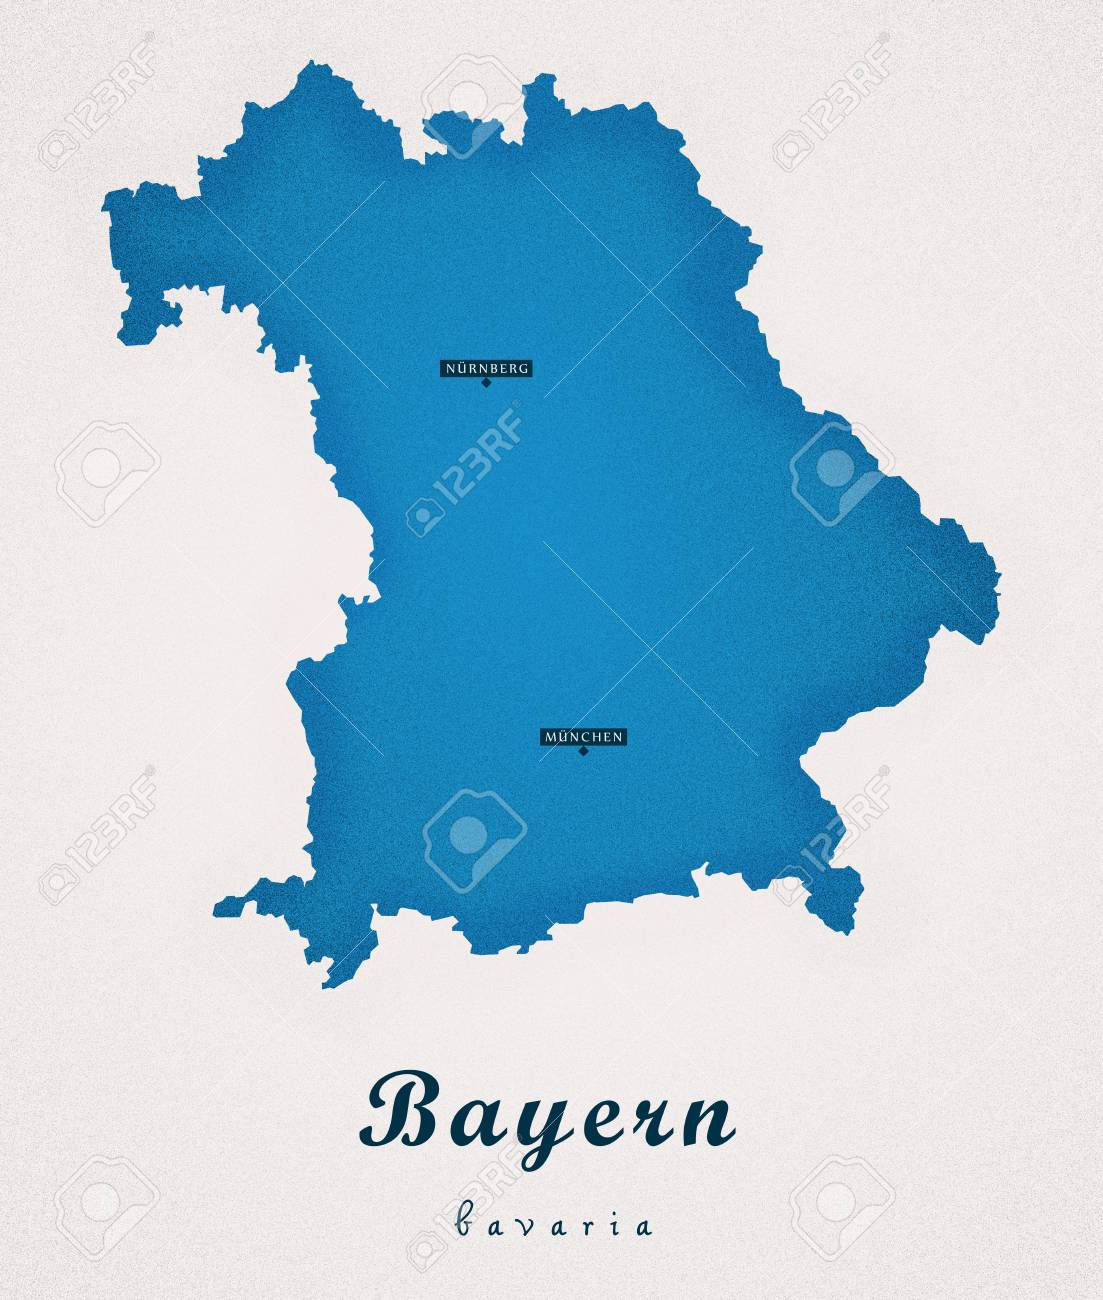 Bayern Germany De Art Map Stock Photo Picture And Royalty Free